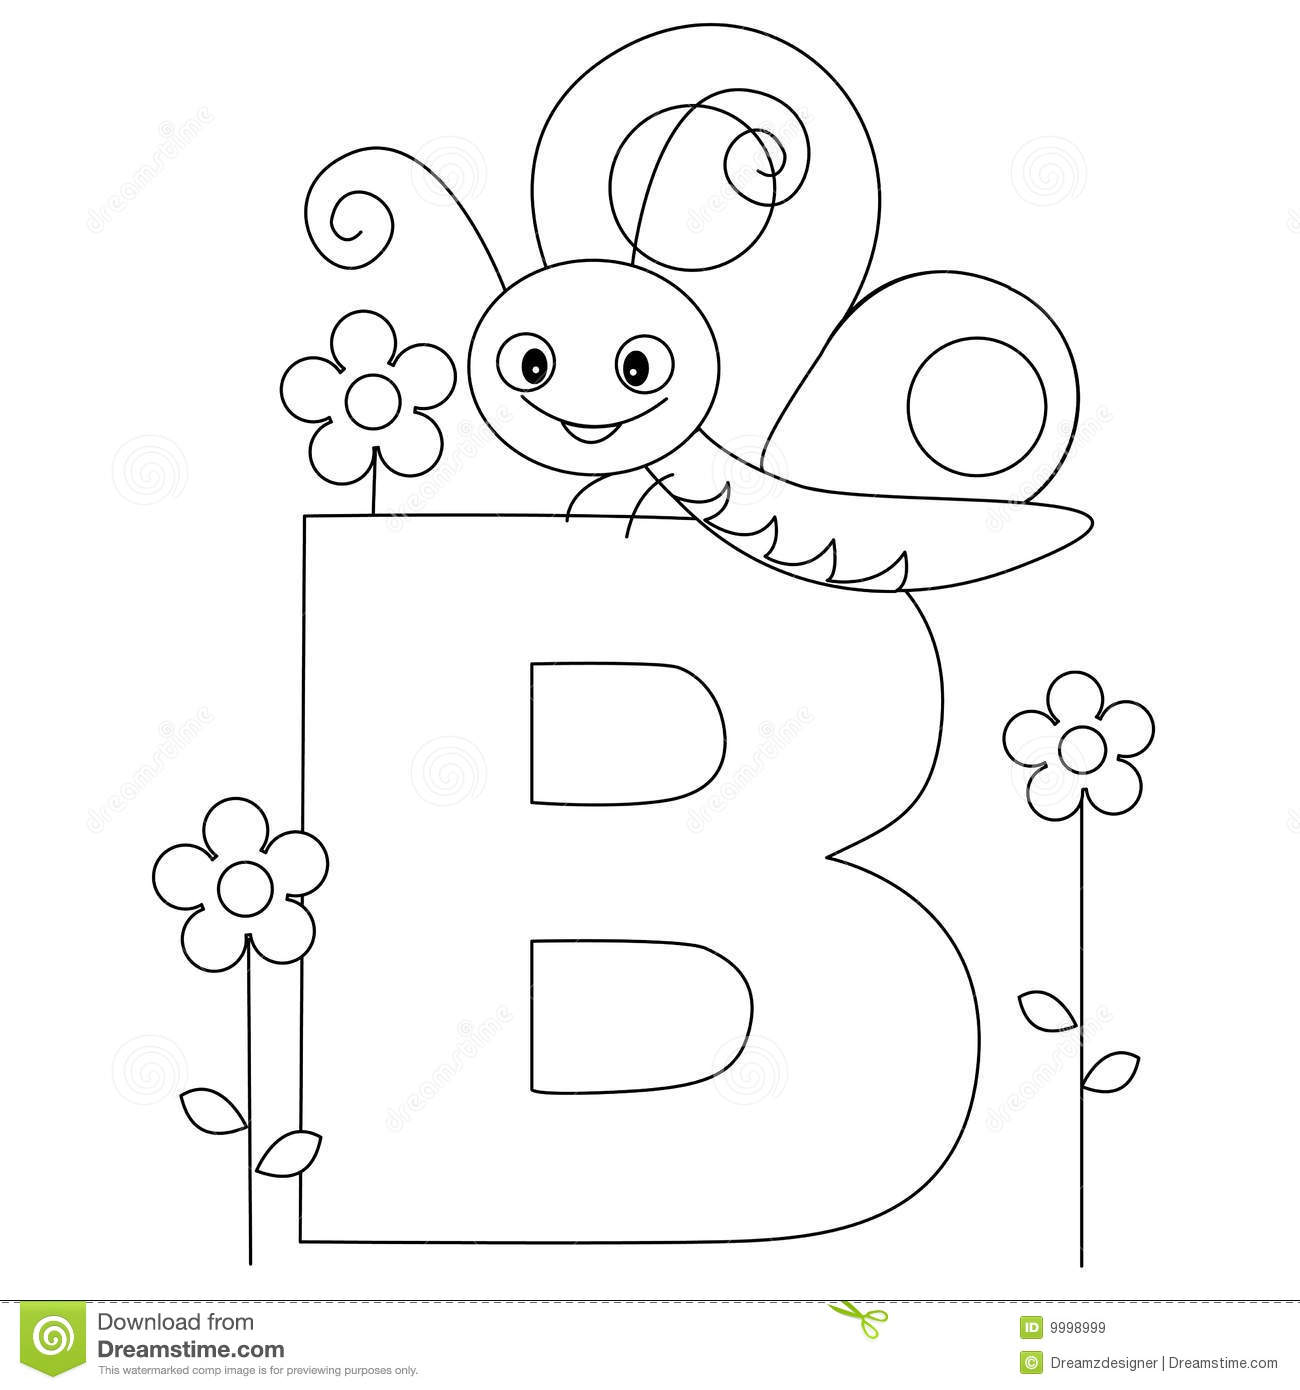 Cute Animal Alphabet Coloring Pages